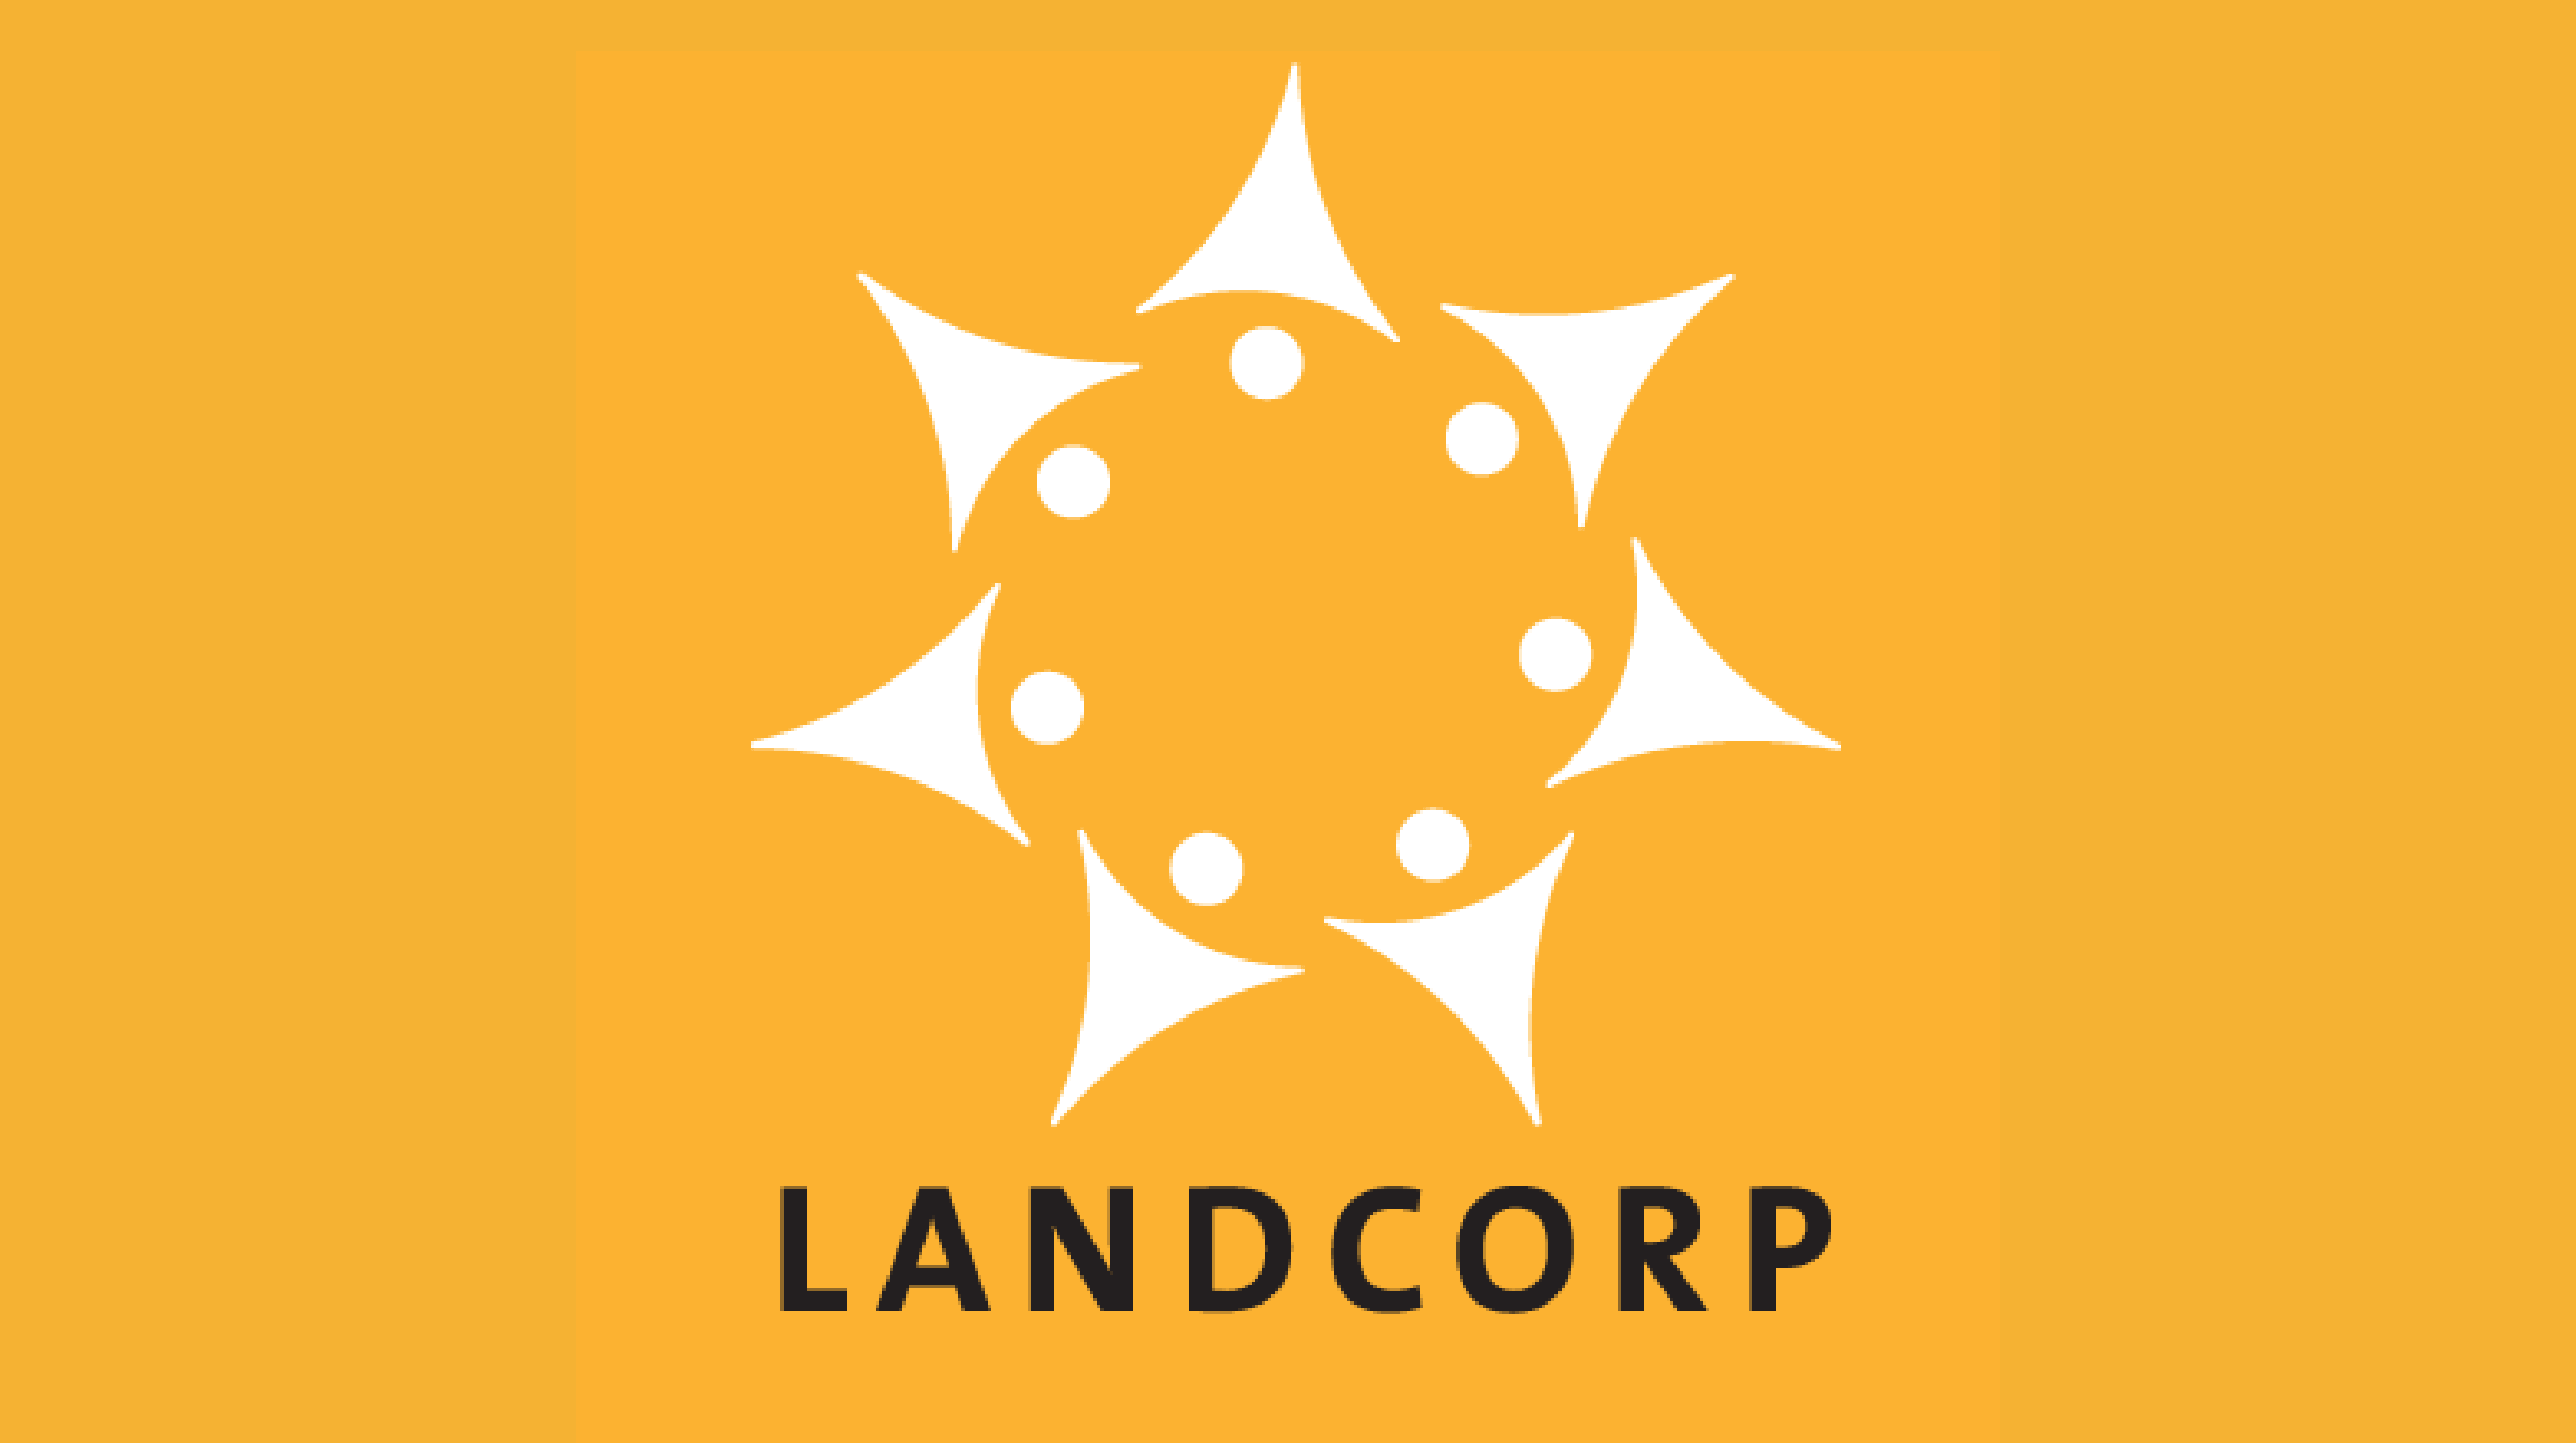 MyOsh Landcorp Yellow Logo